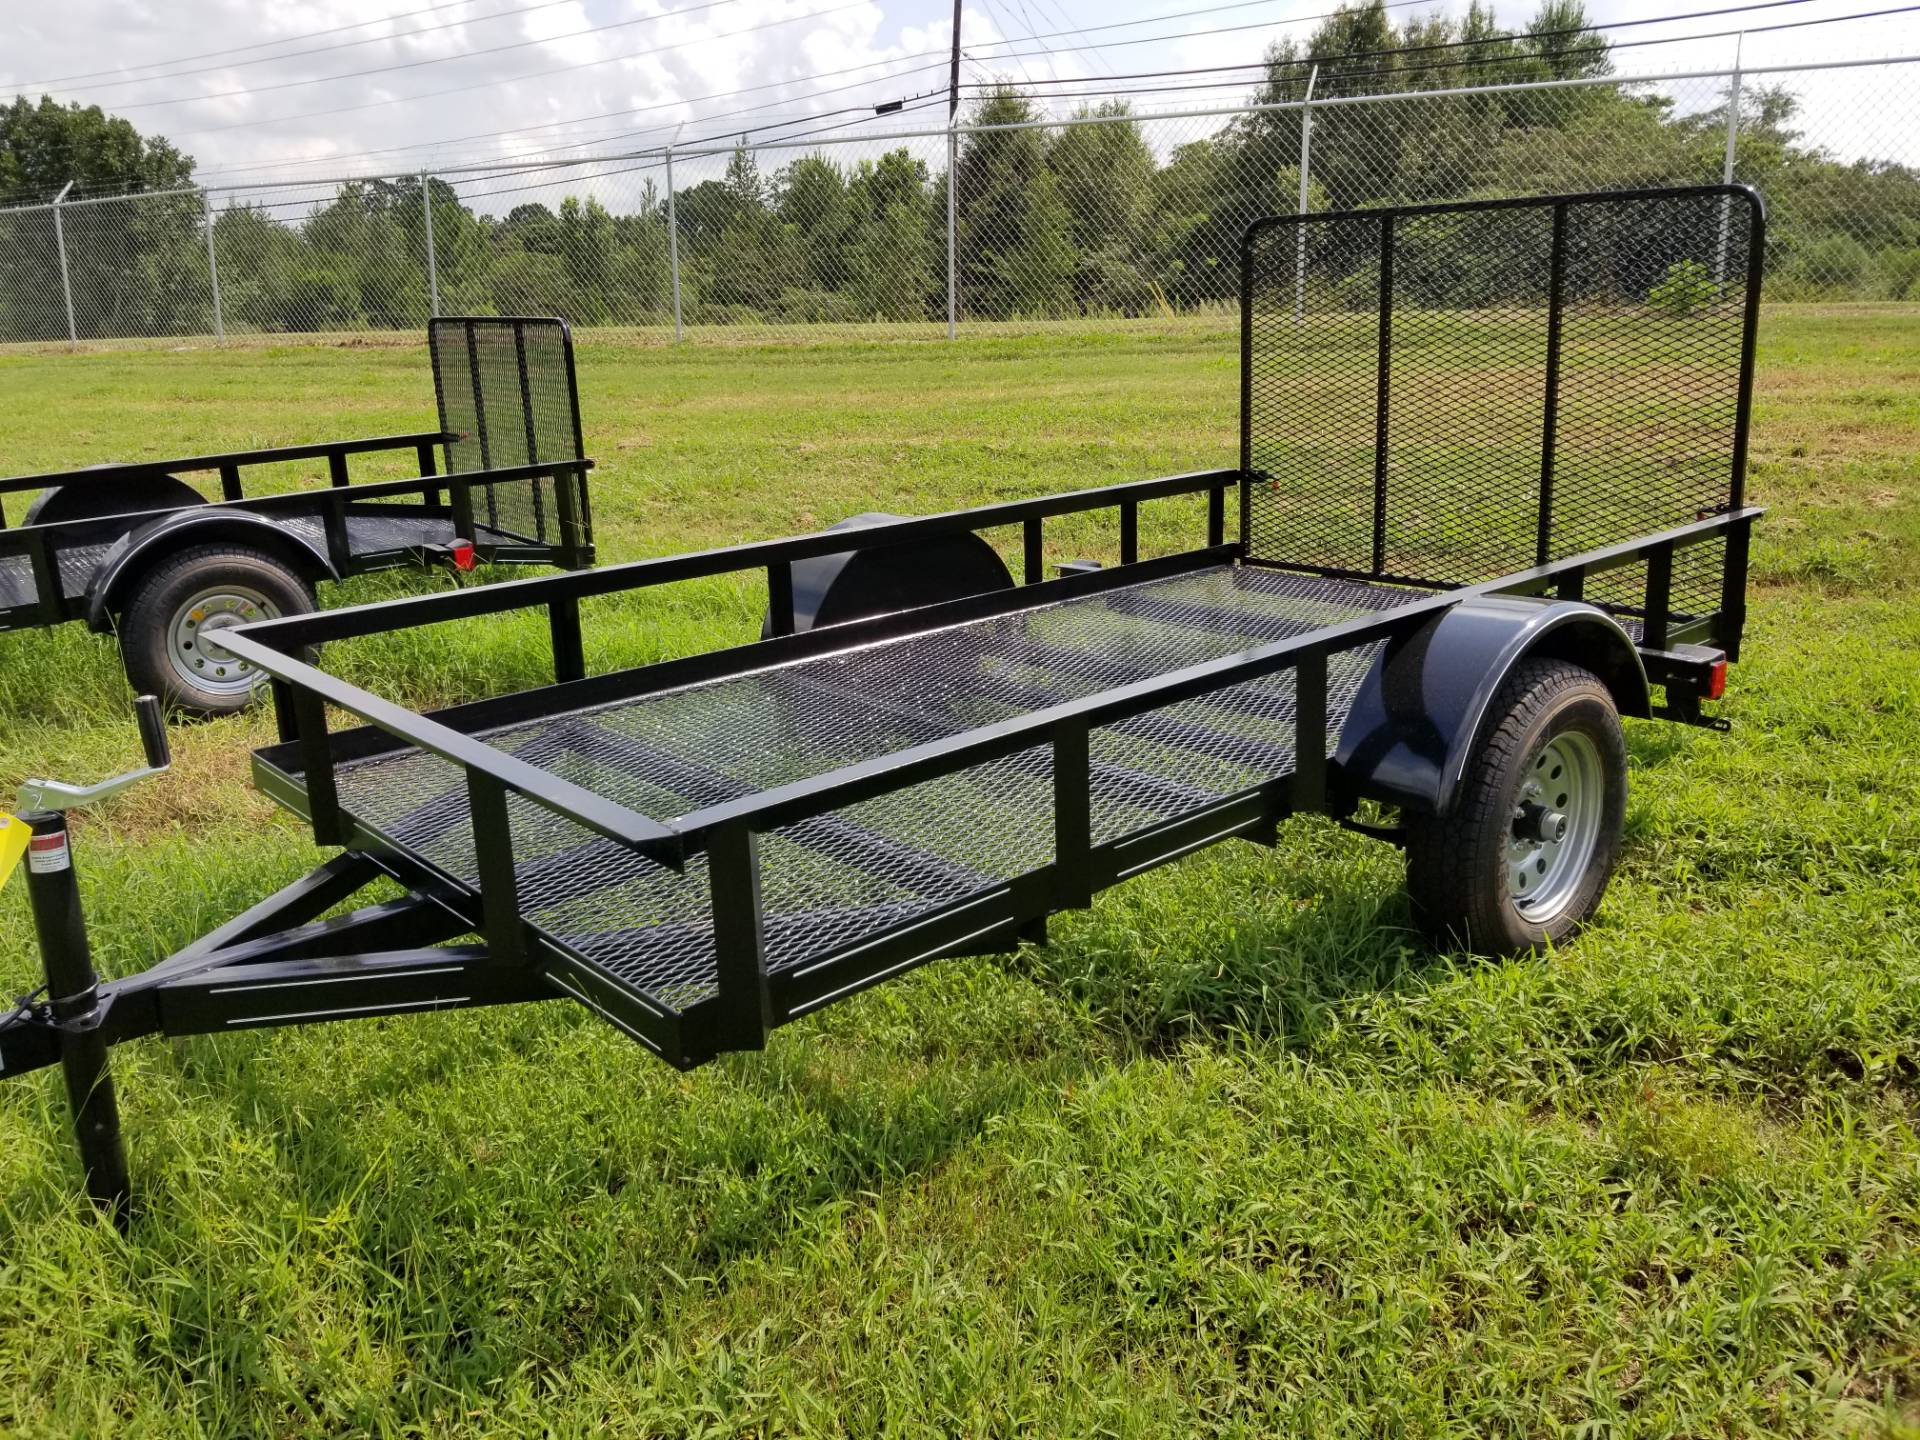 2018 Brewer Implement 2018 Brewer Implement 5x10 Mesh Landscape Utility Trailer In Tifton Georgia